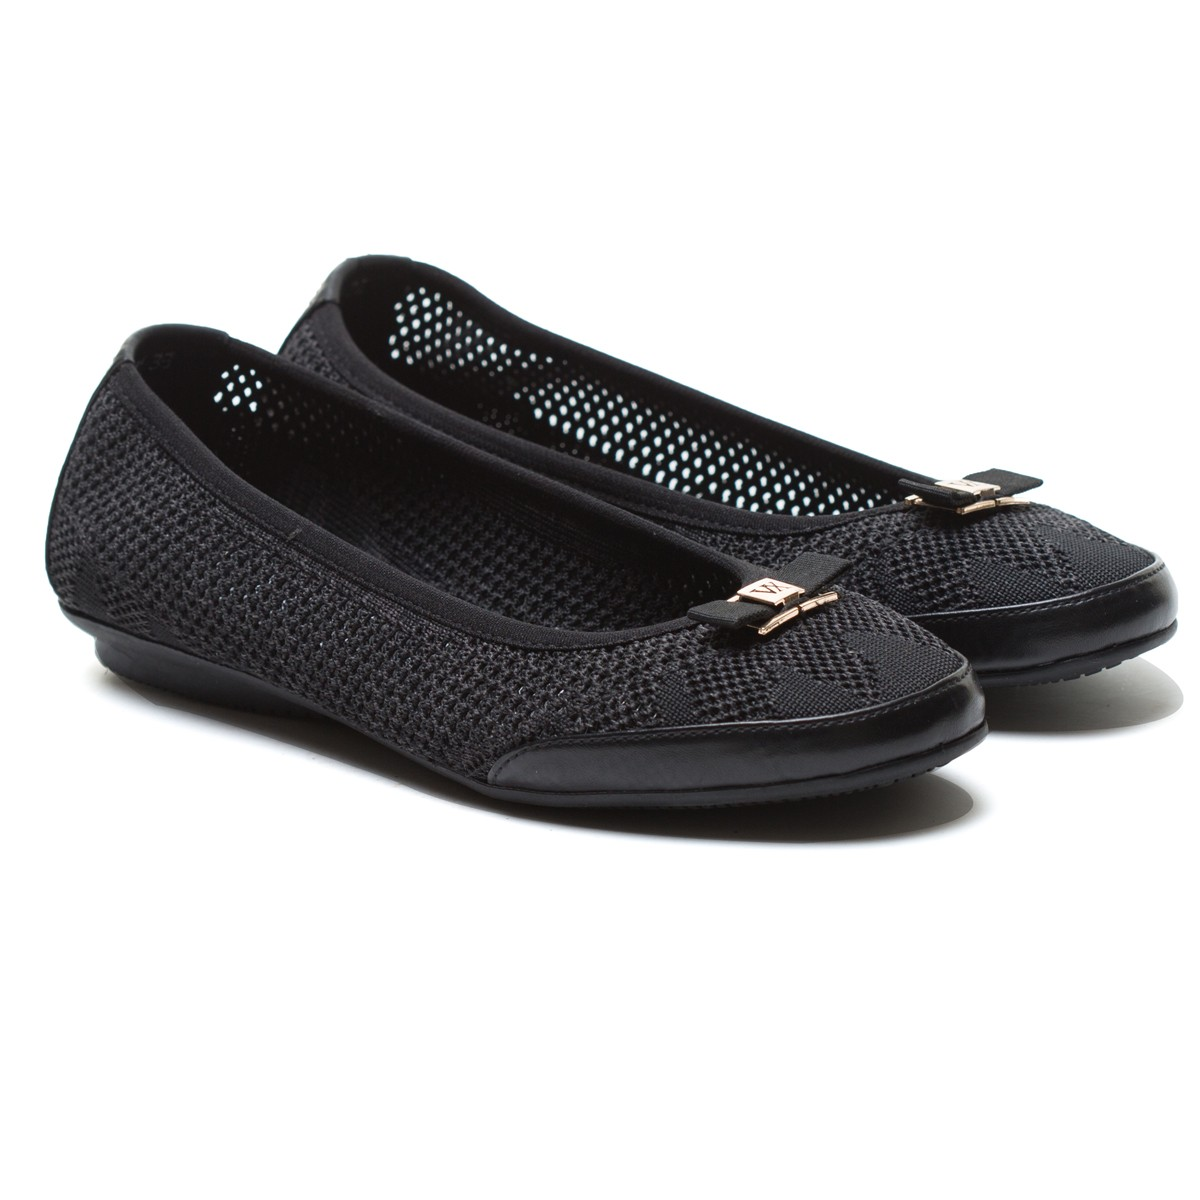 Buy Von Wellx Anise Comfort Black Belly Online in Sri Lanka